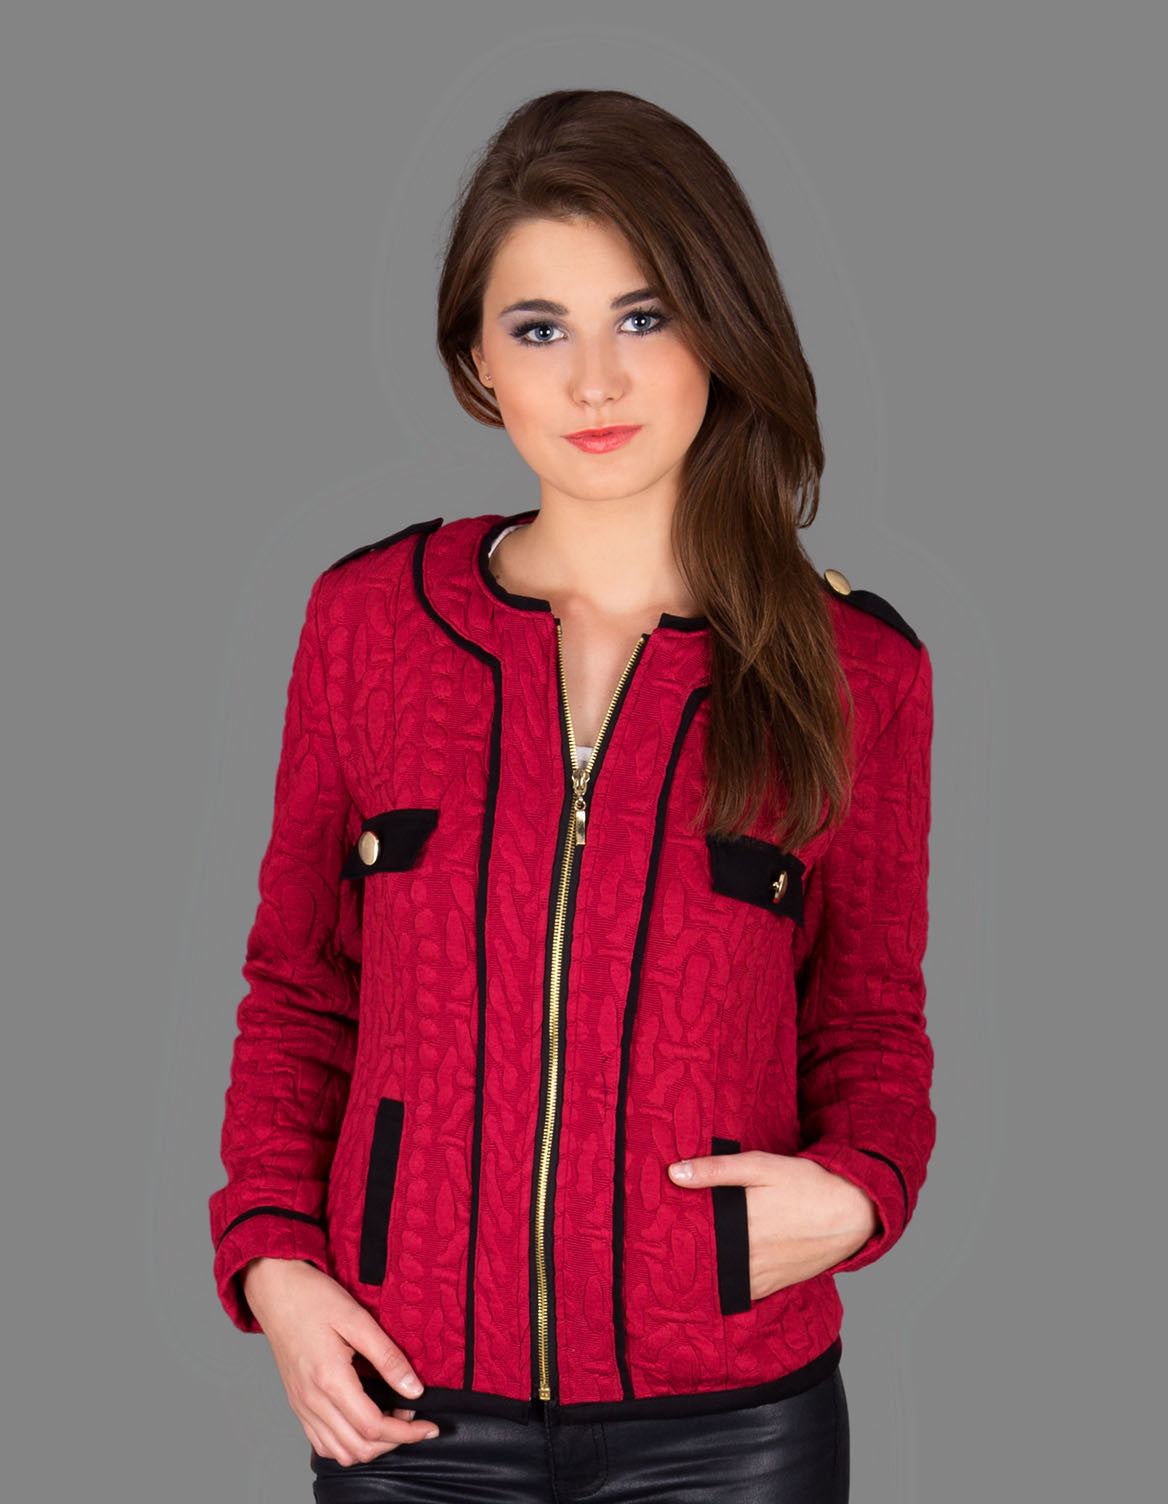 Lady in RED Jacket